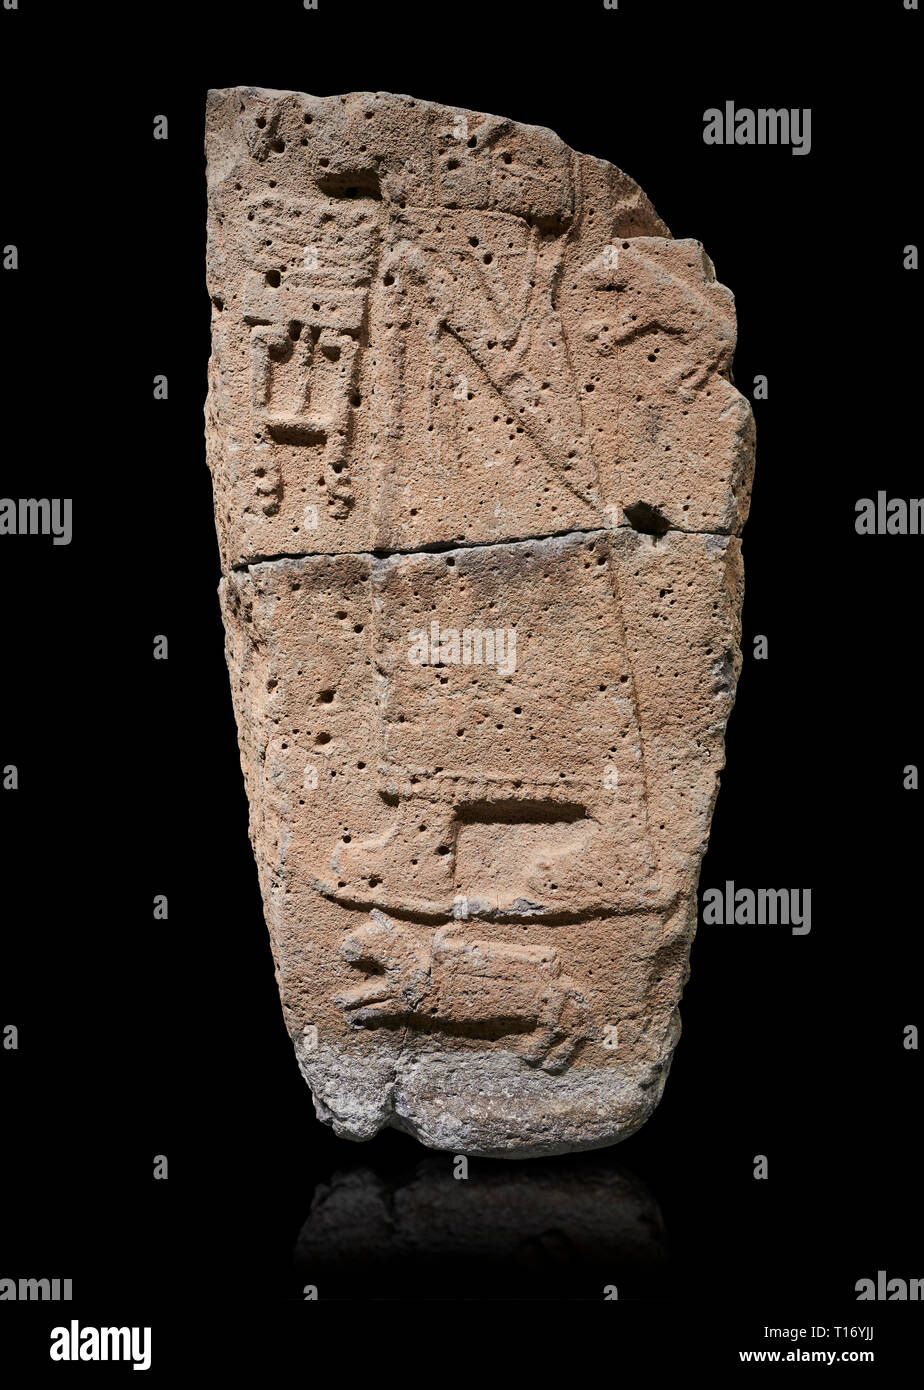 Hittite monumental relief sculpture fragment. Late Hittite Period - 900-700 BC. Adana Archaeology Museum, Turkey. Against a black background Stock Photo